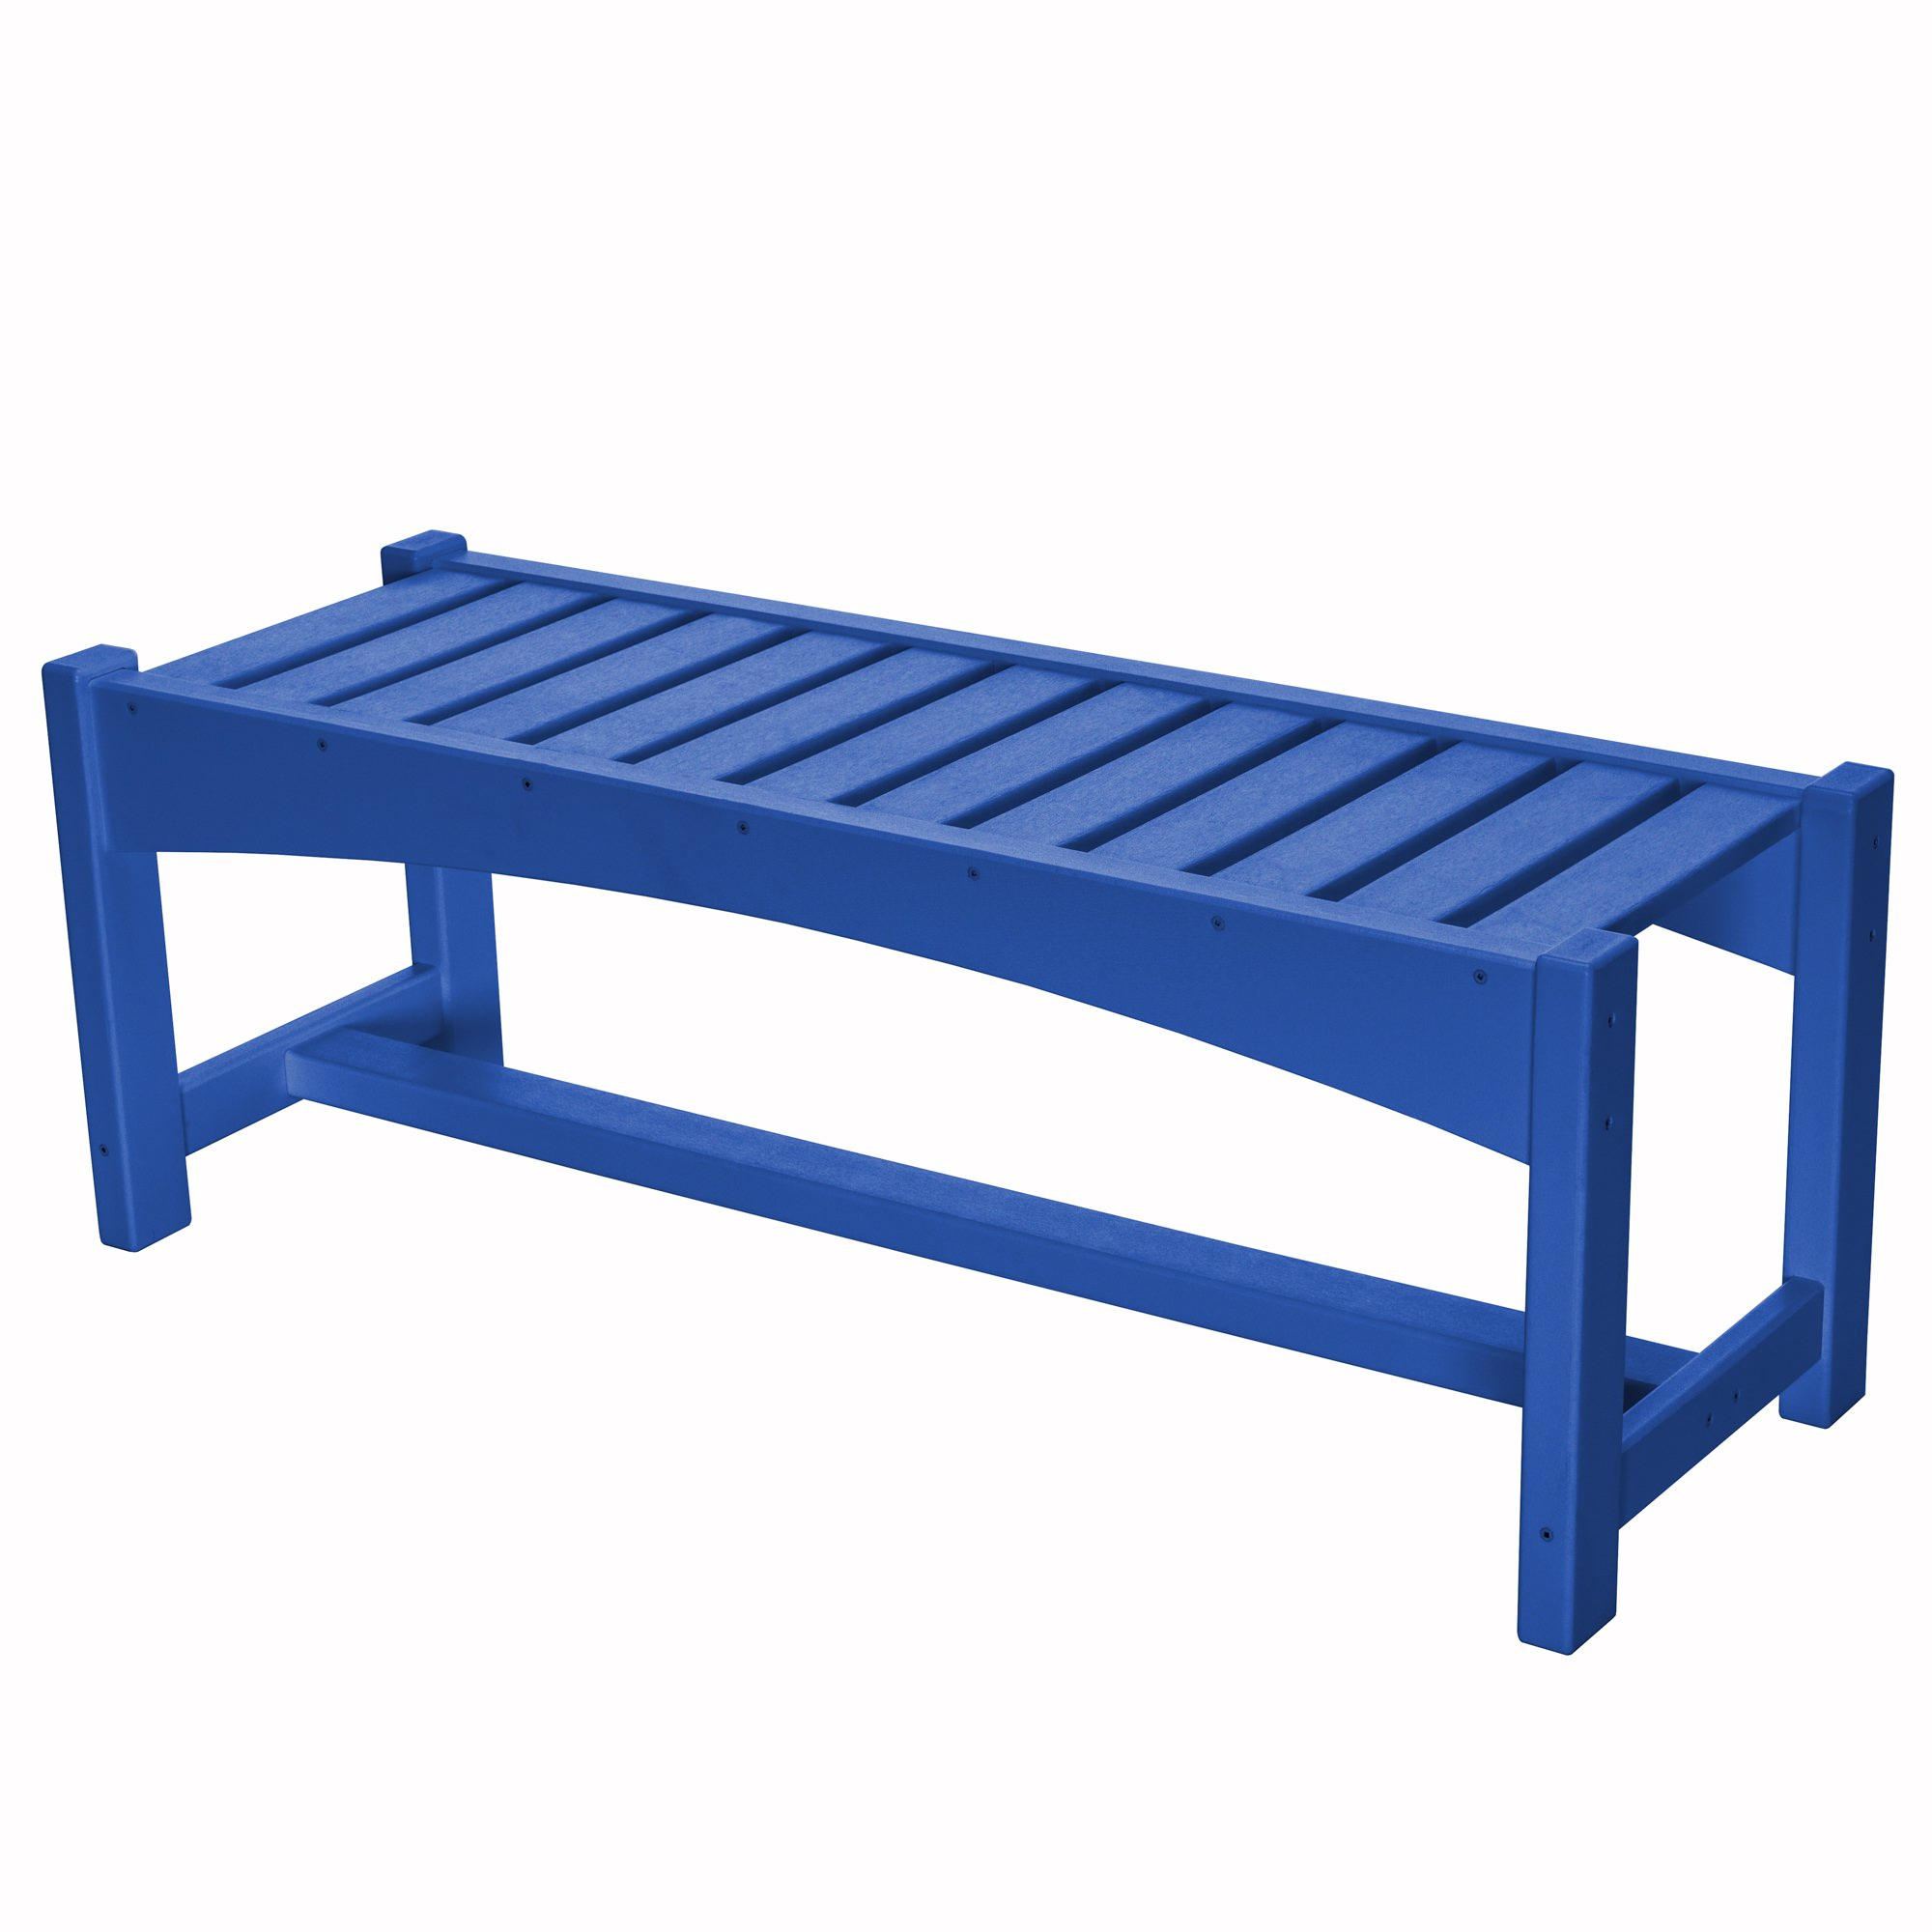 Admirable Dining Bench Blue Alphanode Cool Chair Designs And Ideas Alphanodeonline